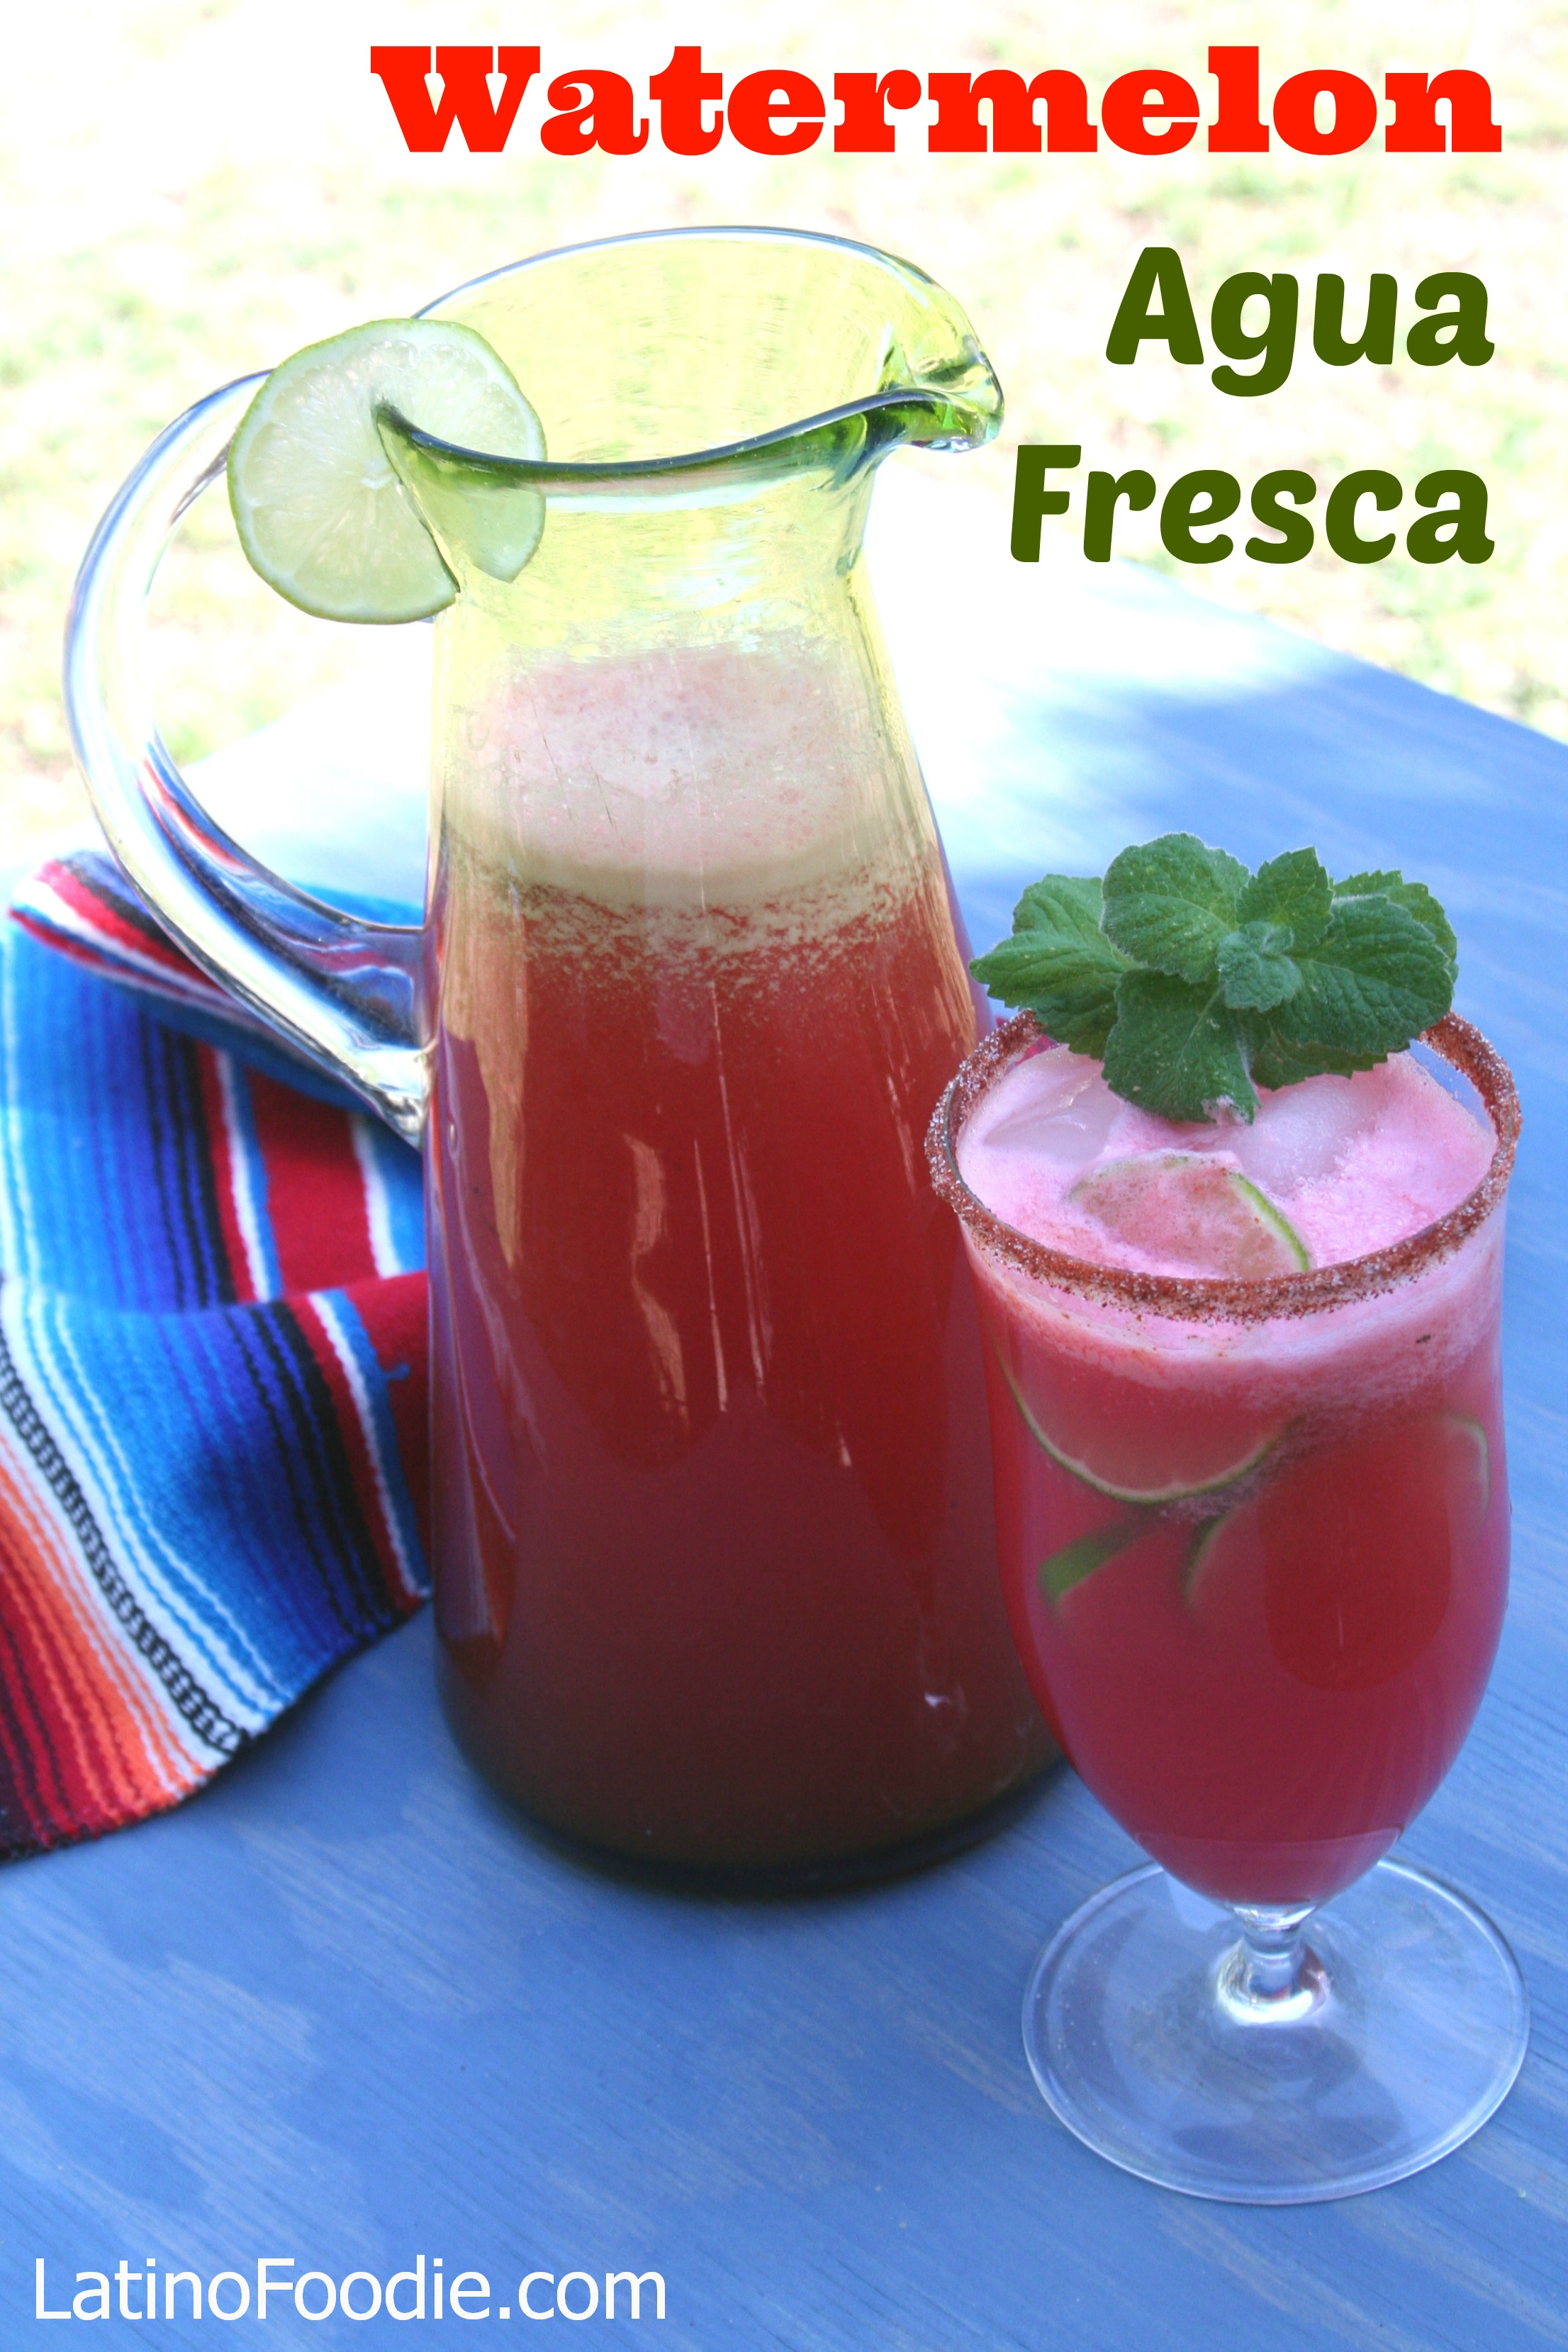 Watermelon Agua Fresca with Text - Latino Foodie